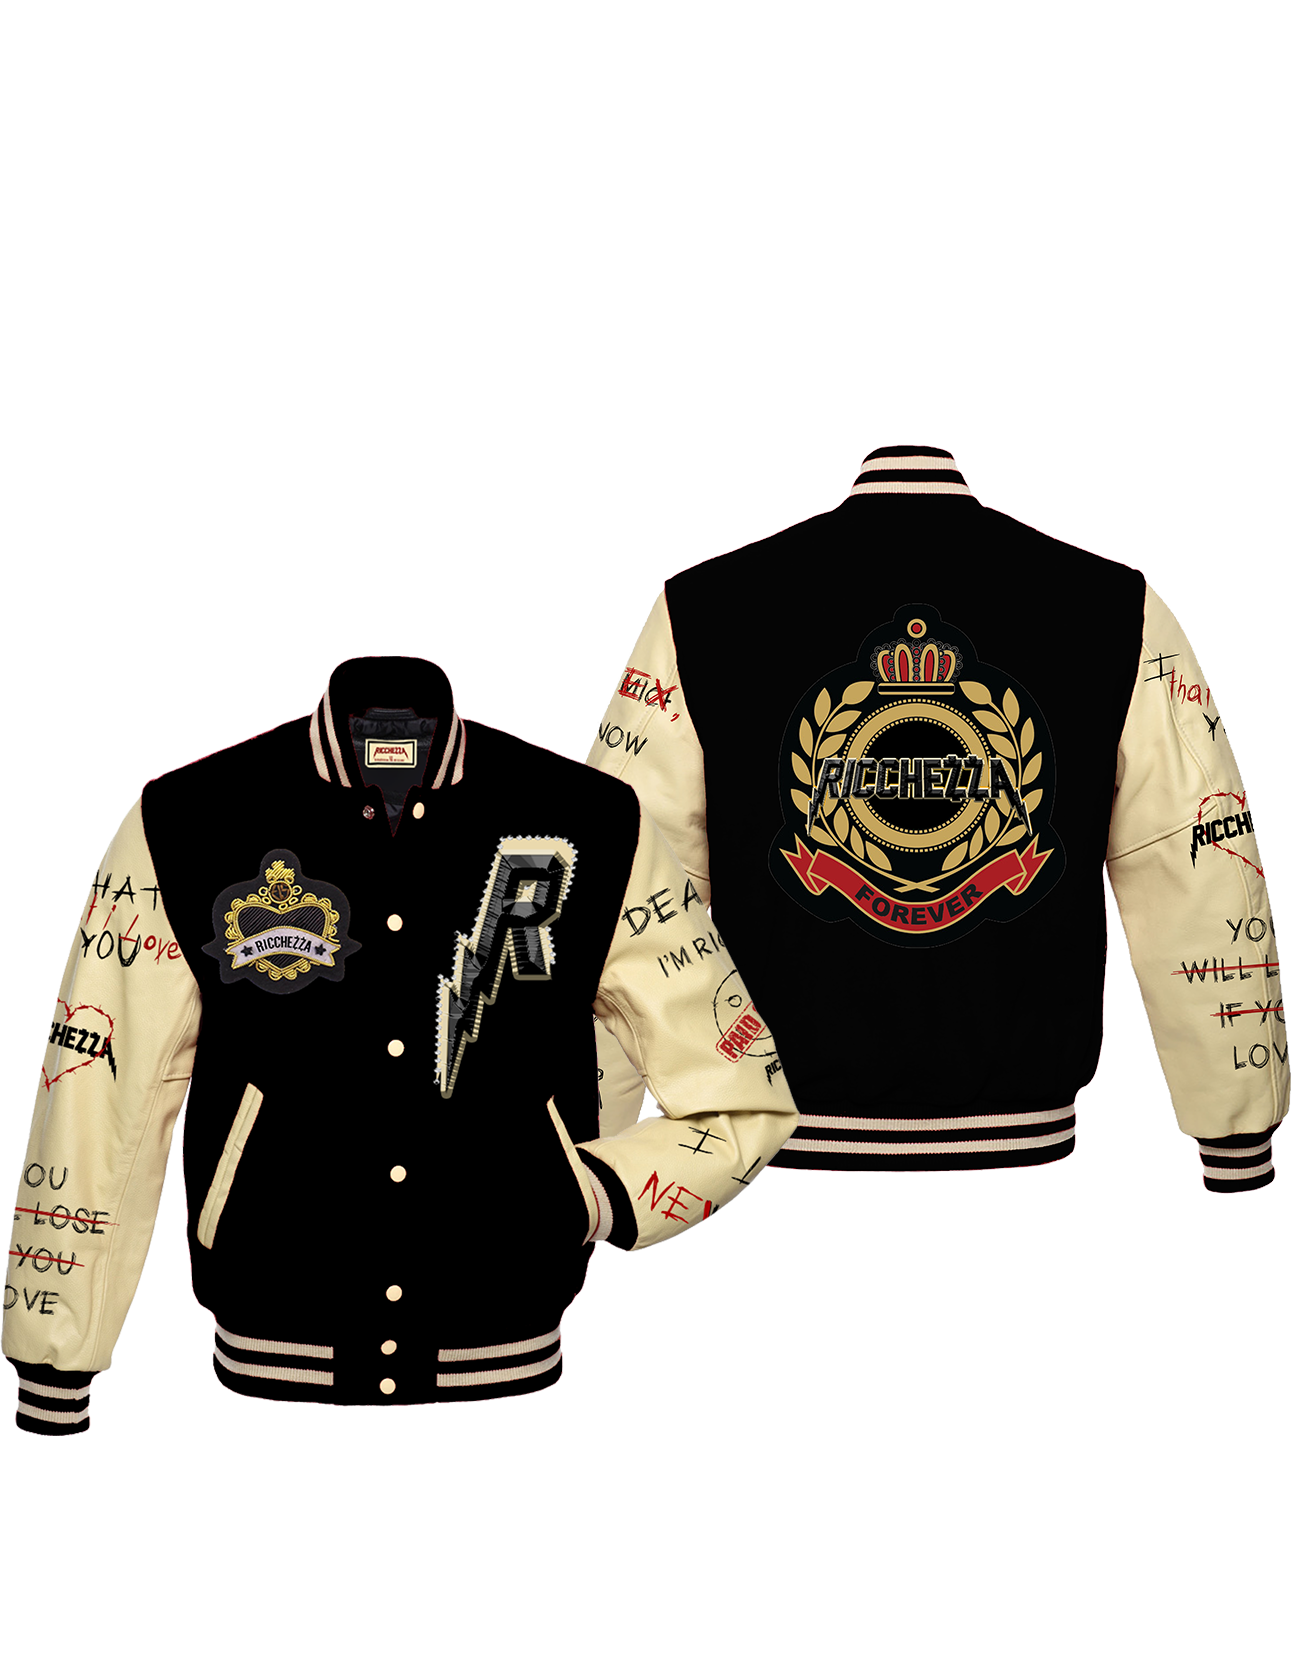 Ricchezza Royalties & Wealth LuvLetter Varsity Jacket